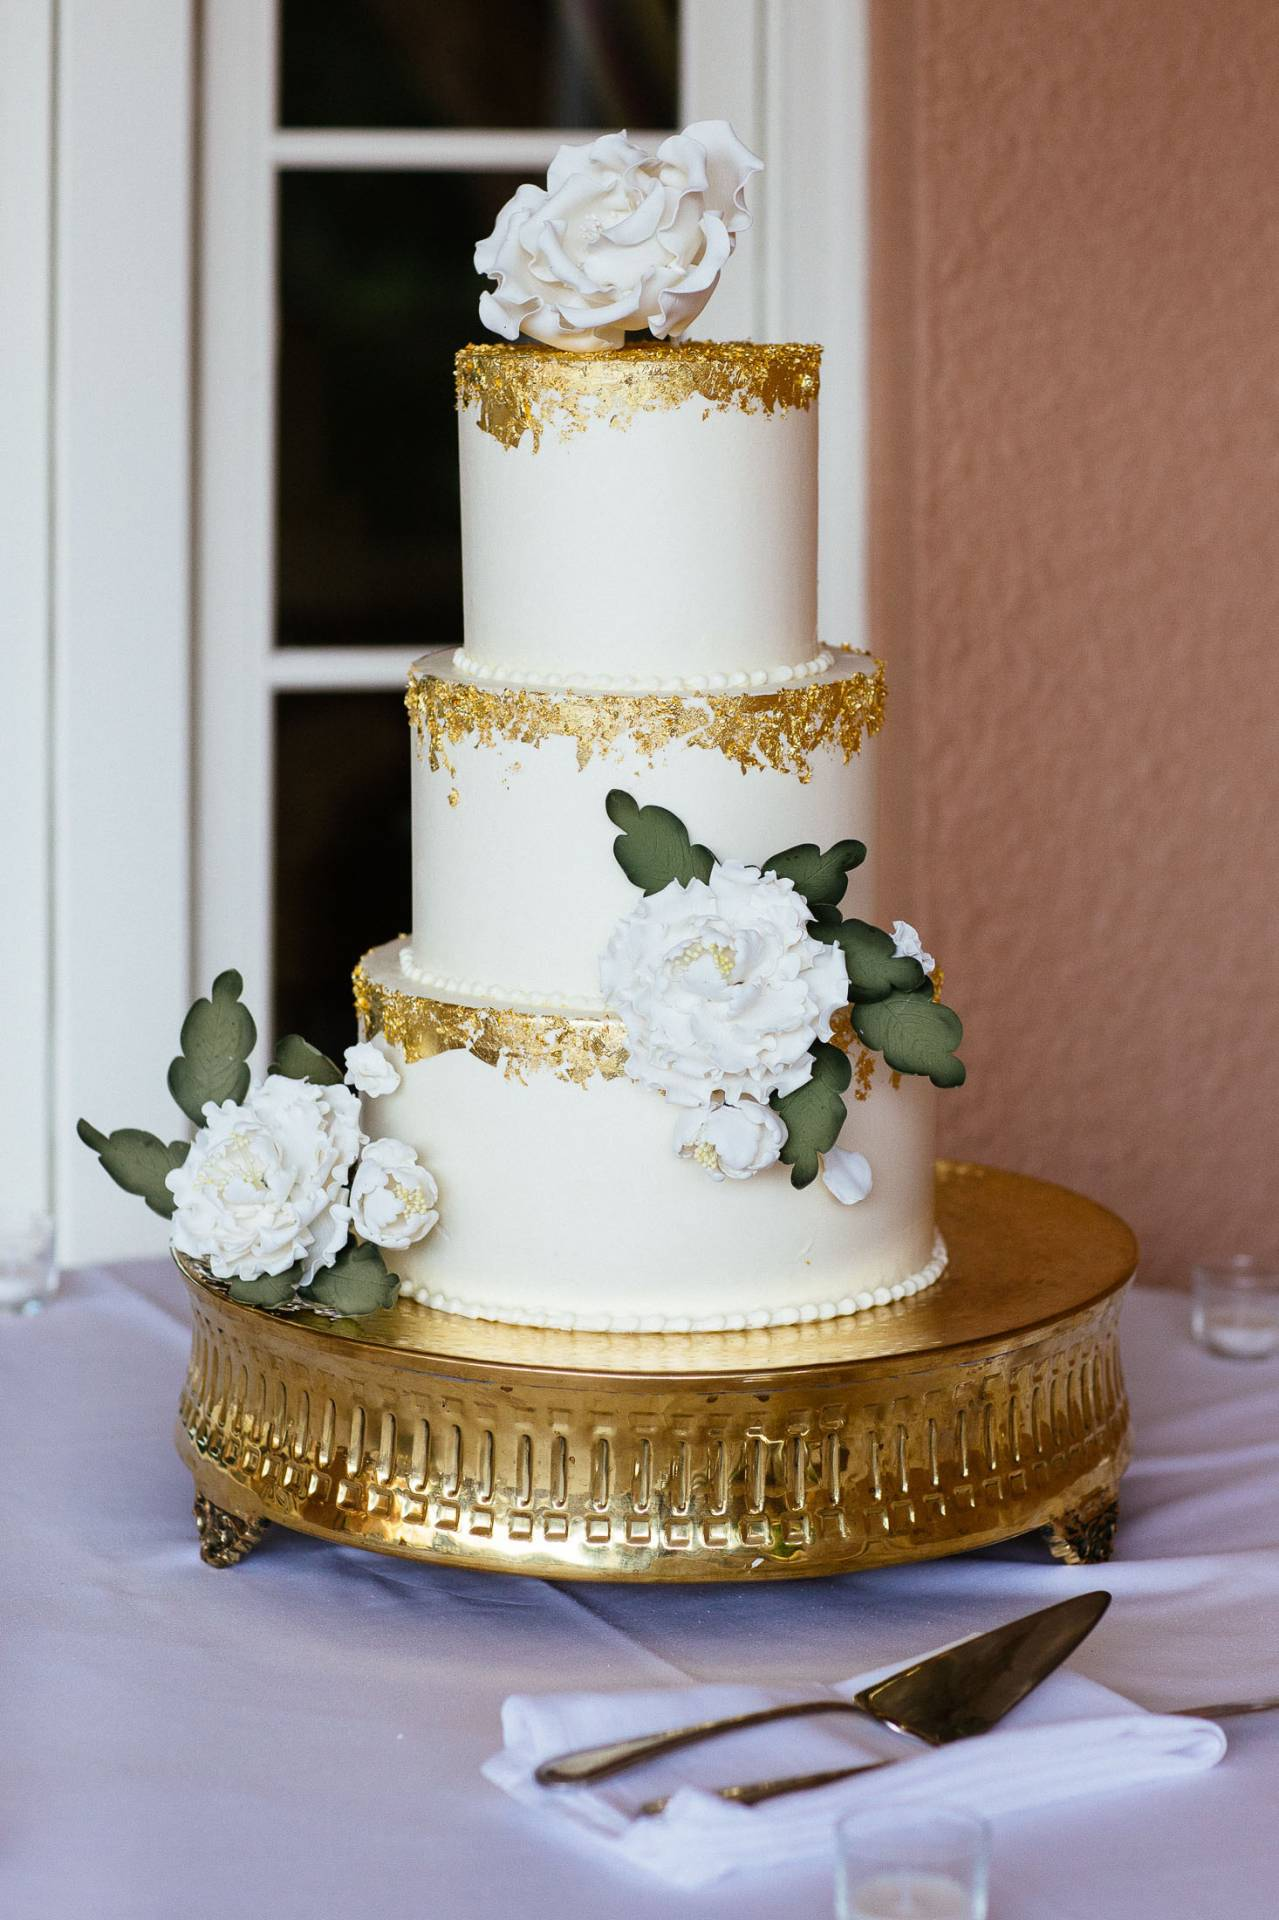 Three-tiered wedding cake with white flowers and gold leaf.